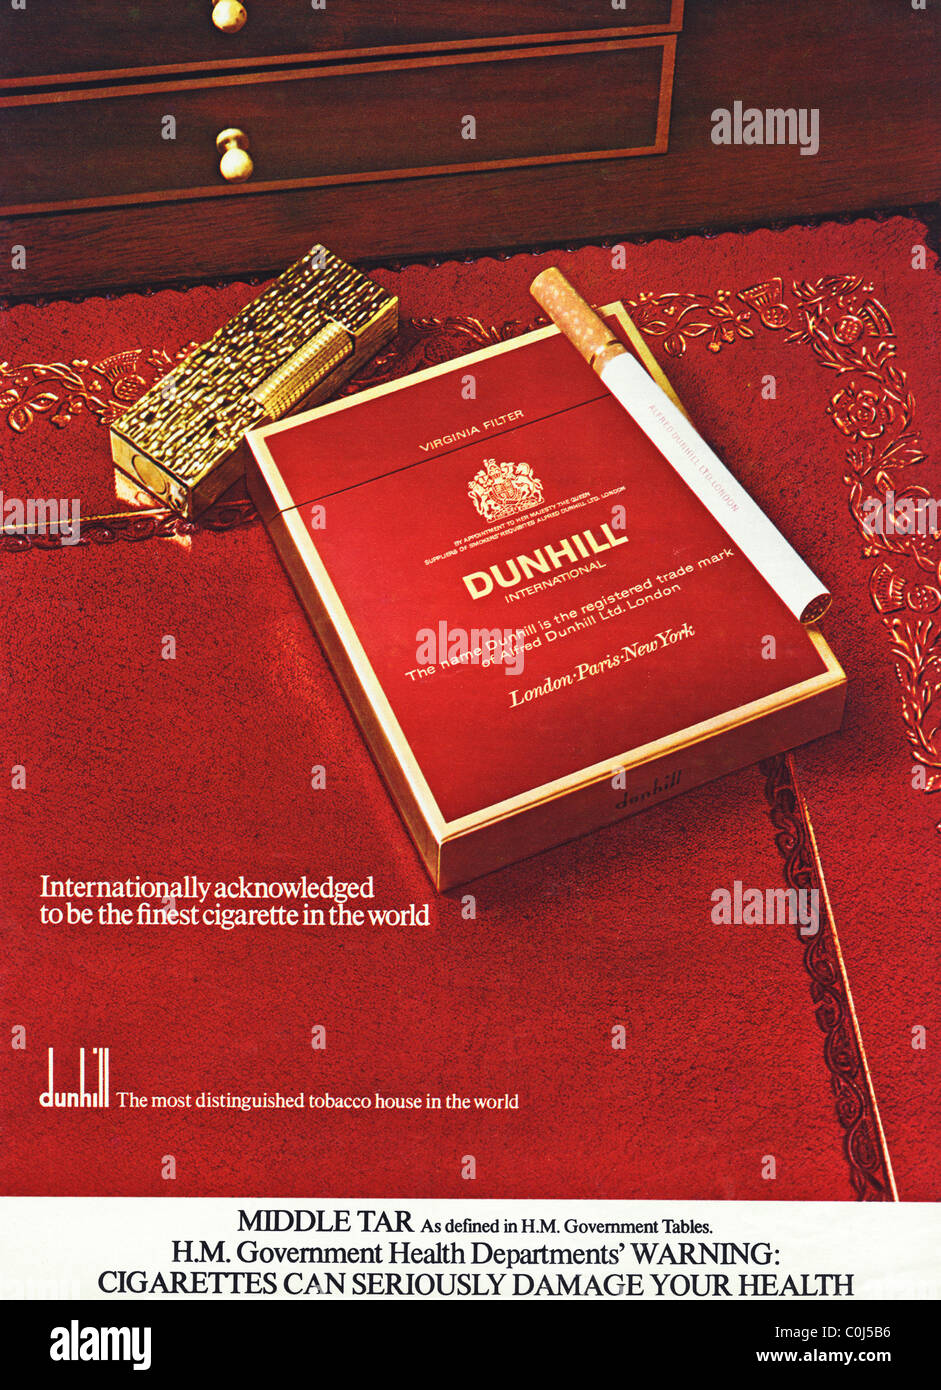 Full page advertisement in 1970s English men's magazine for DUNHILL filter tipped cigarettes - Stock Image